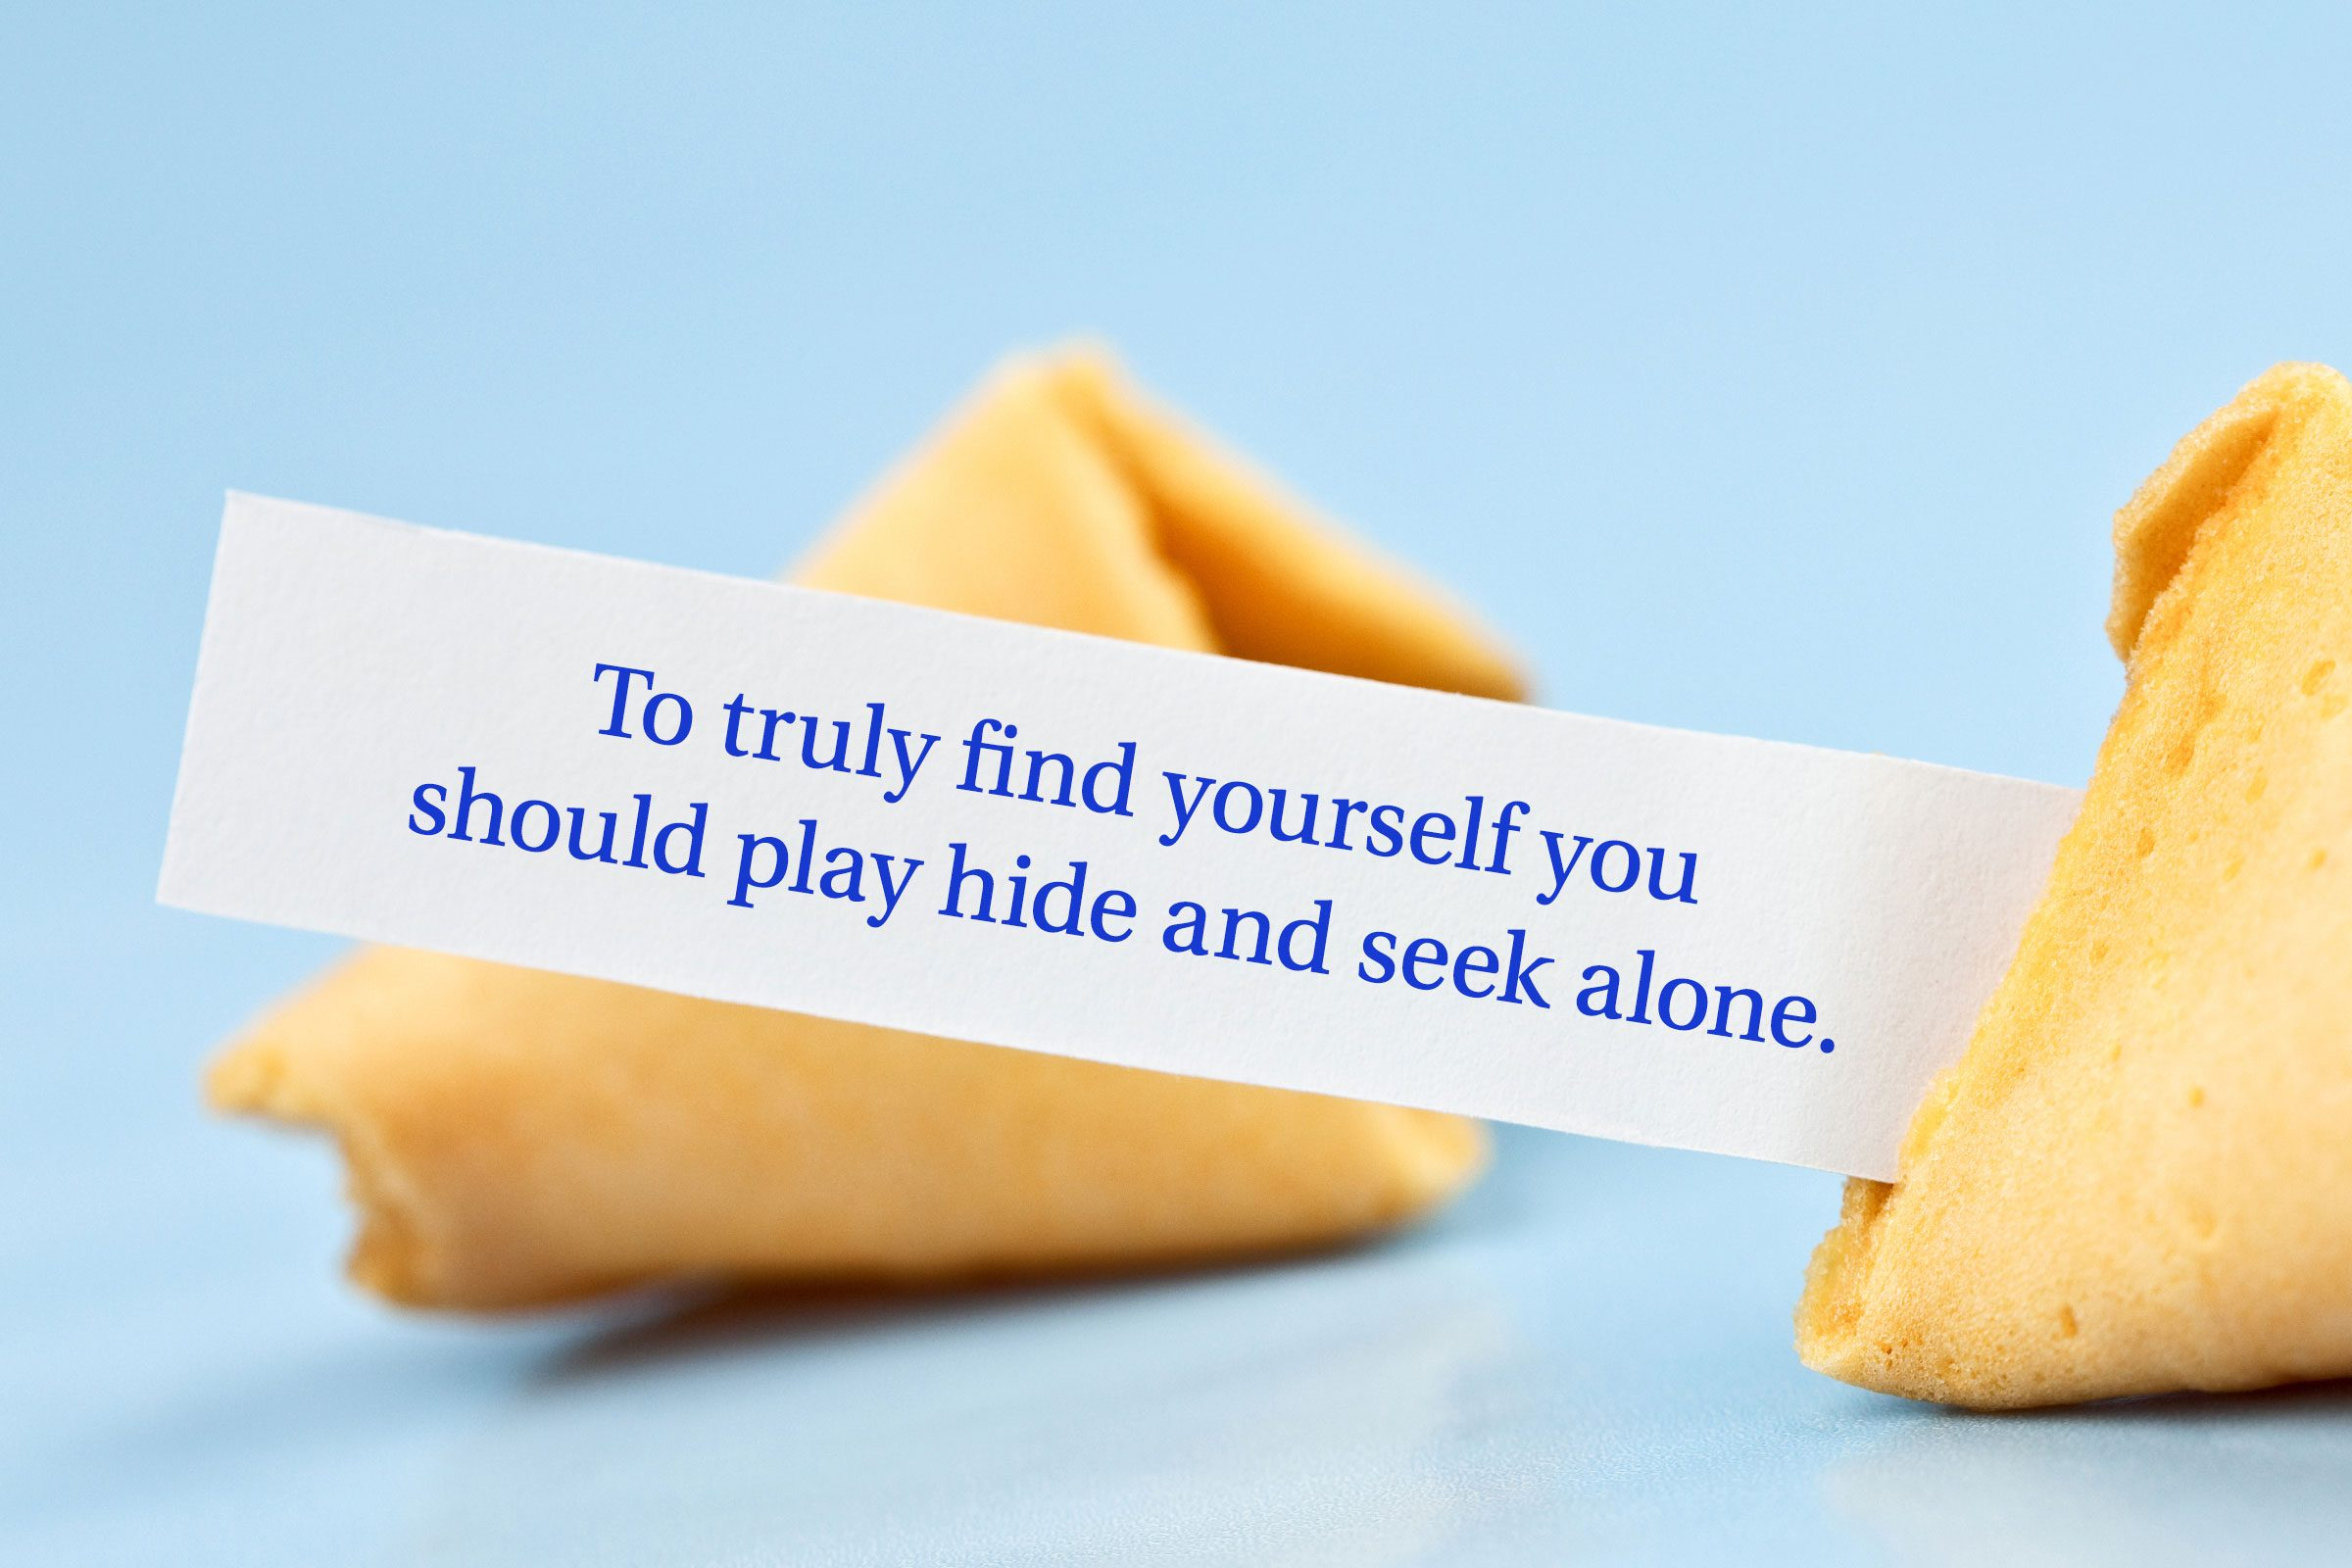 For image: To truly find yourself you should play hide and seek alone.